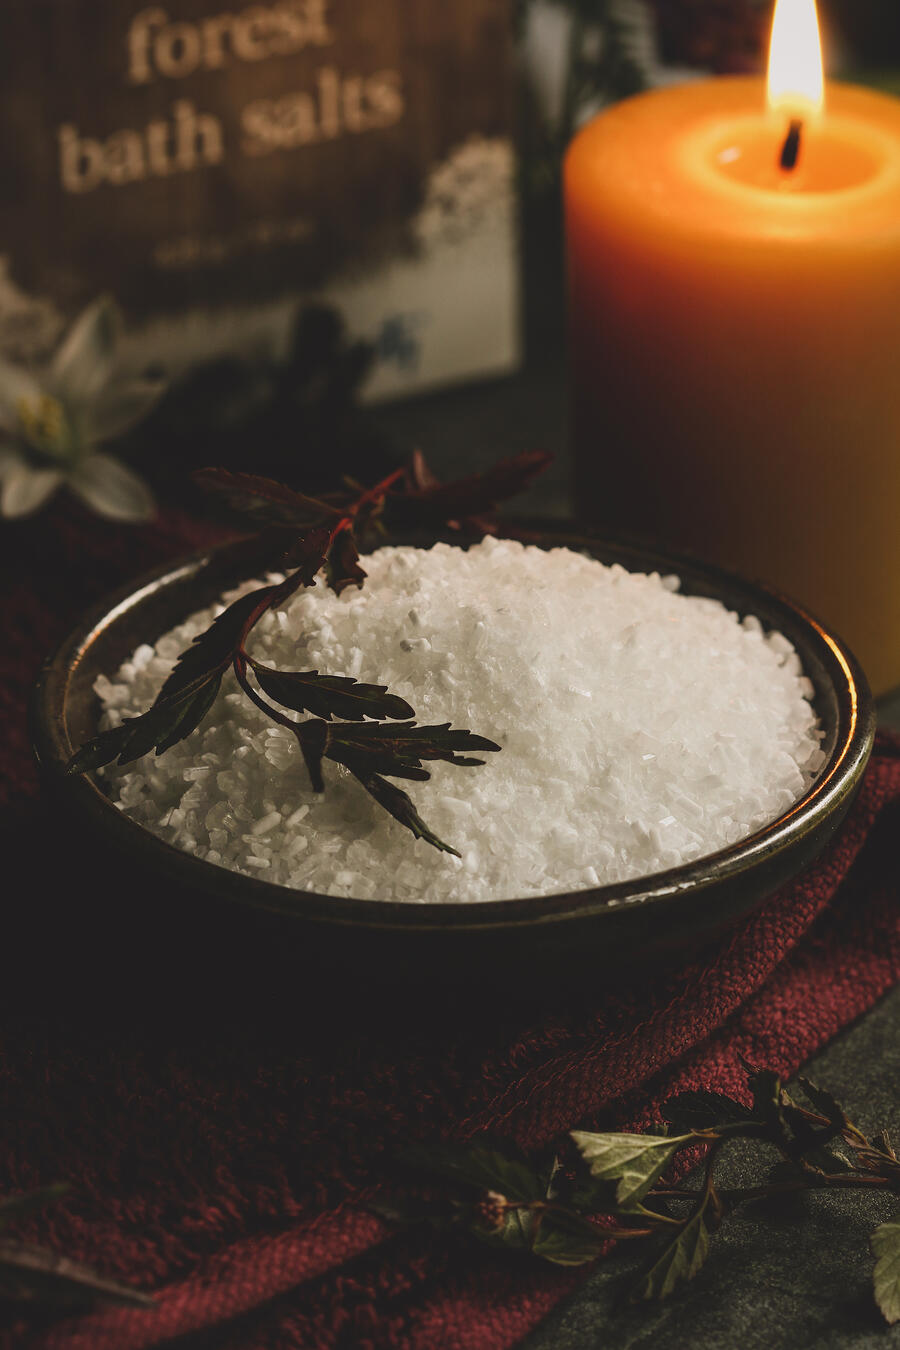 Bath salts in a bowl with a candle.